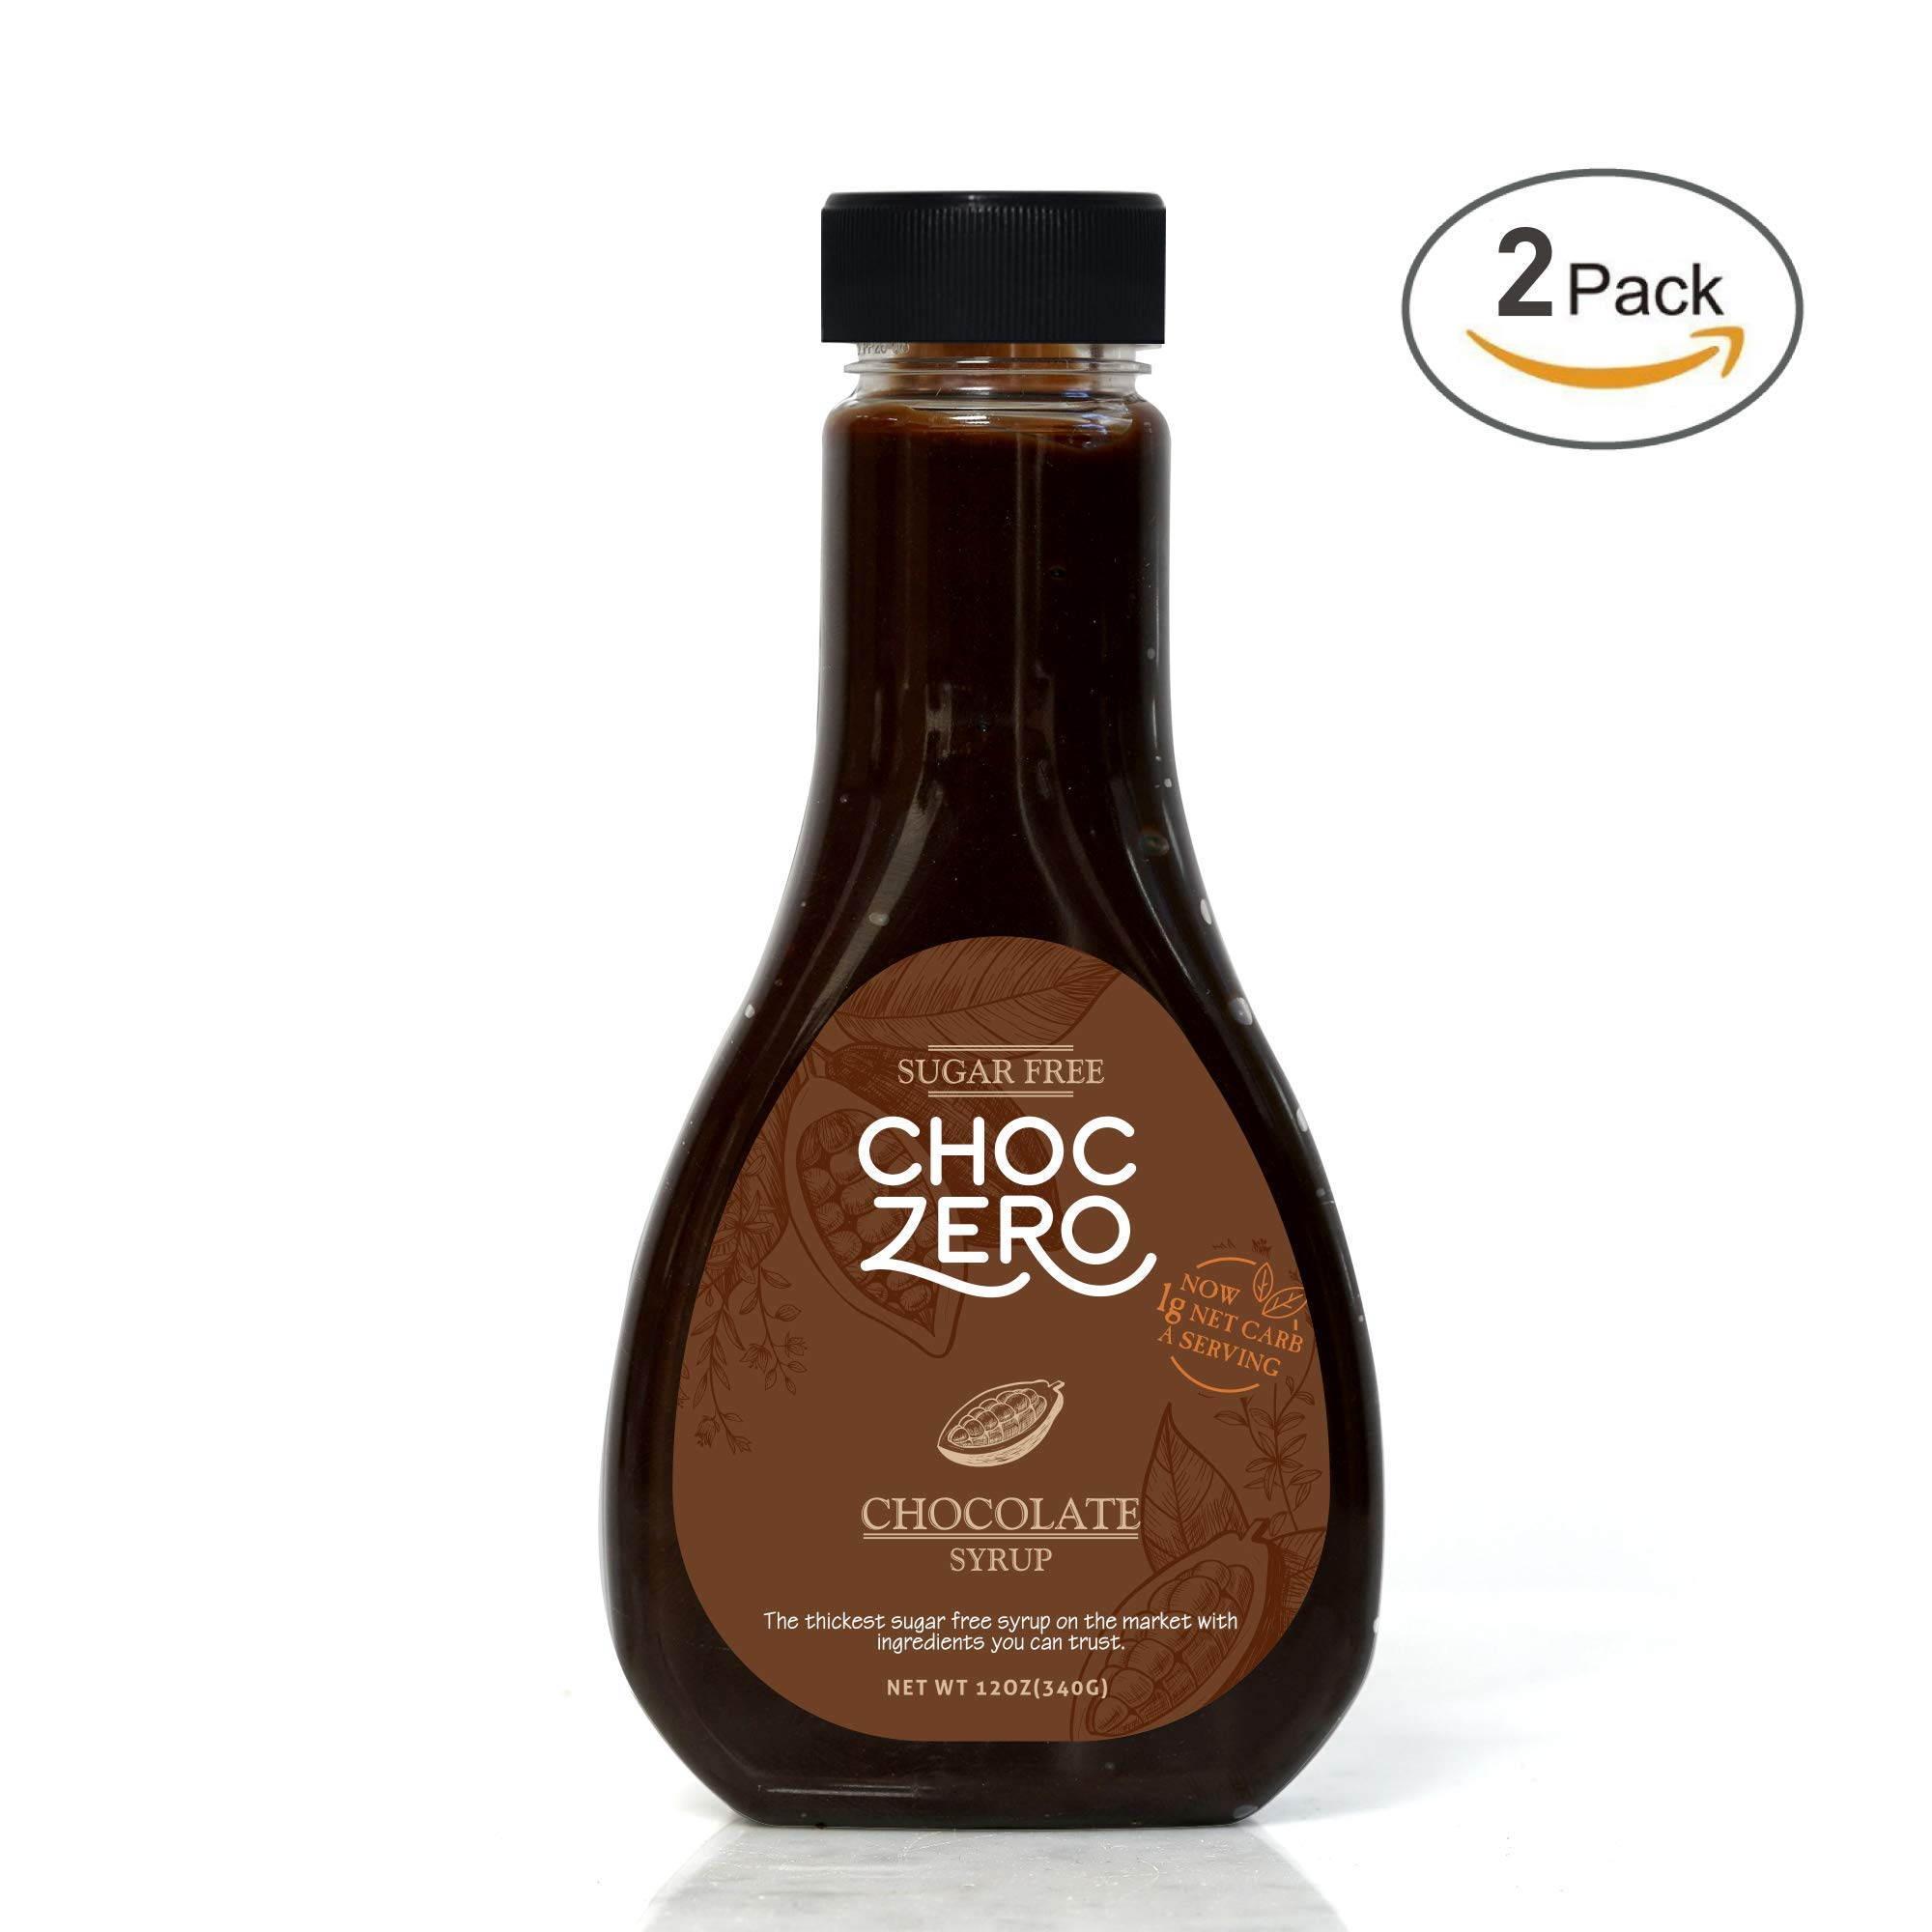 Honest Syrup, Chocolate Sauce. Sugar free, Low Carb, No preservatives. Thick and rich. Sugar Alcohol free, Gluten Free, Real Cocoa Liquor. 2 Bottles(2X12oz)